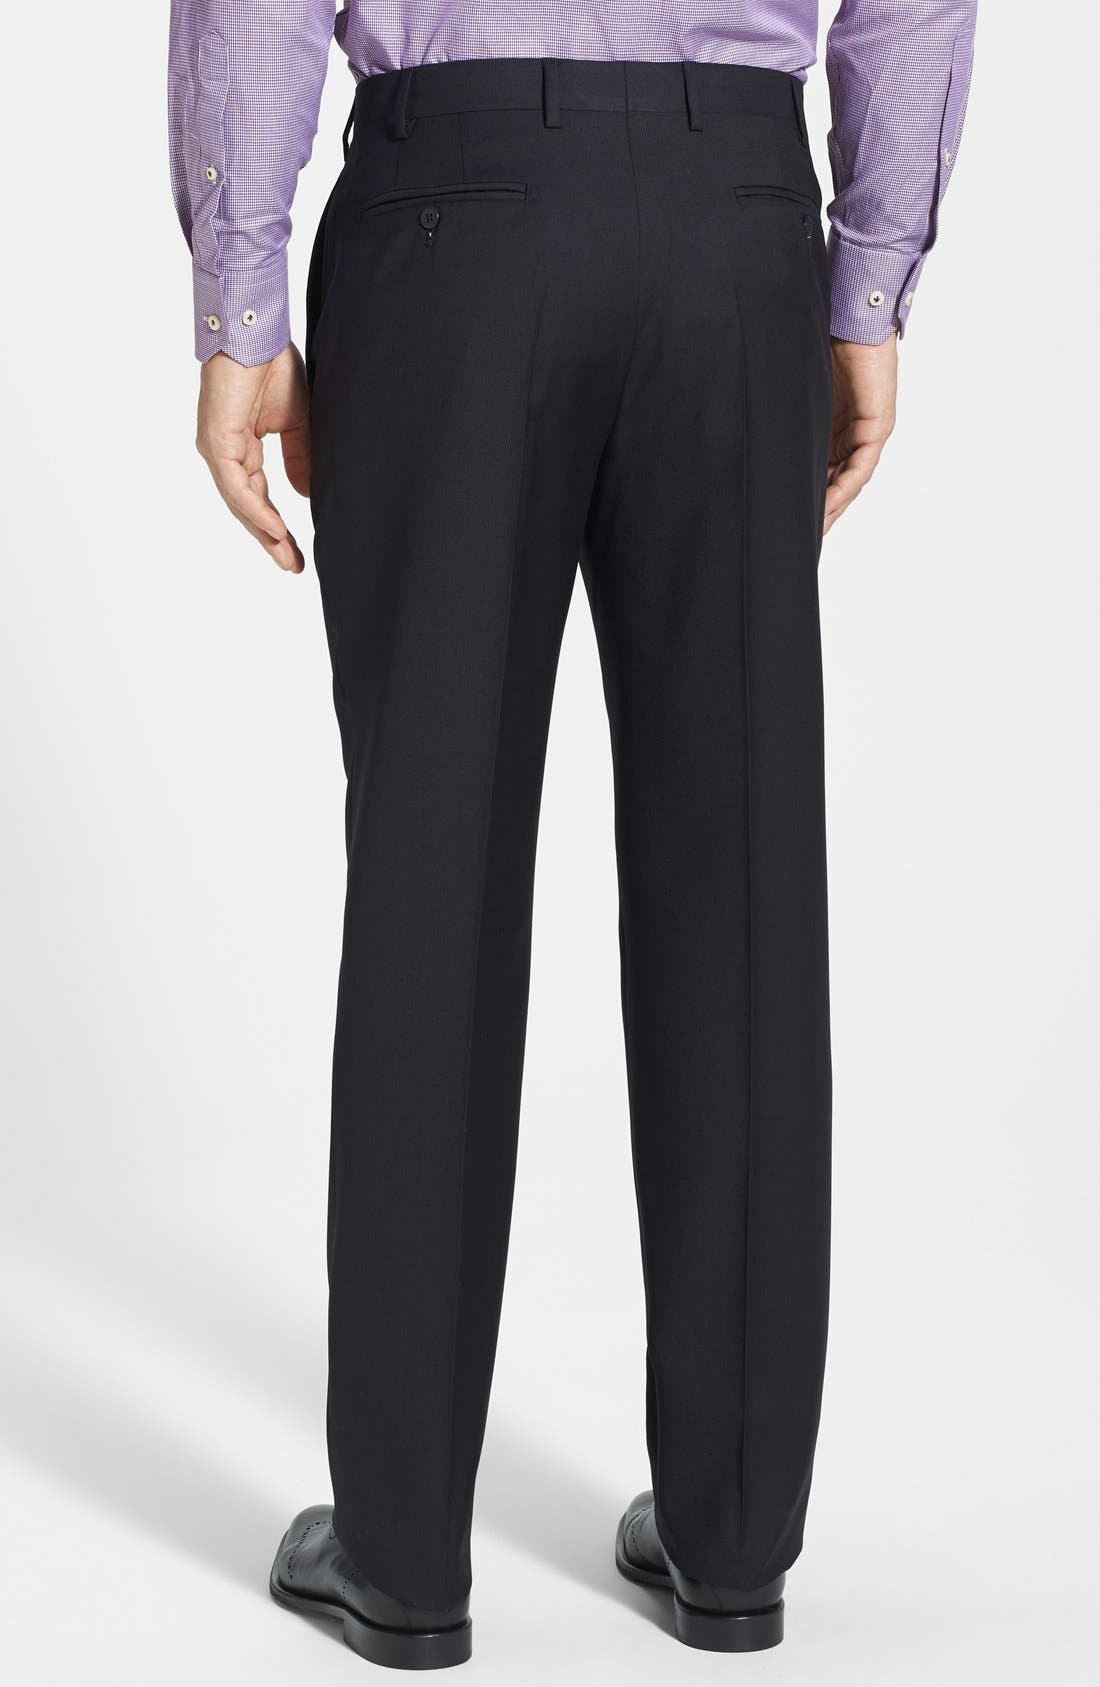 'Devon' Flat Front Wool Trousers,                             Alternate thumbnail 12, color,